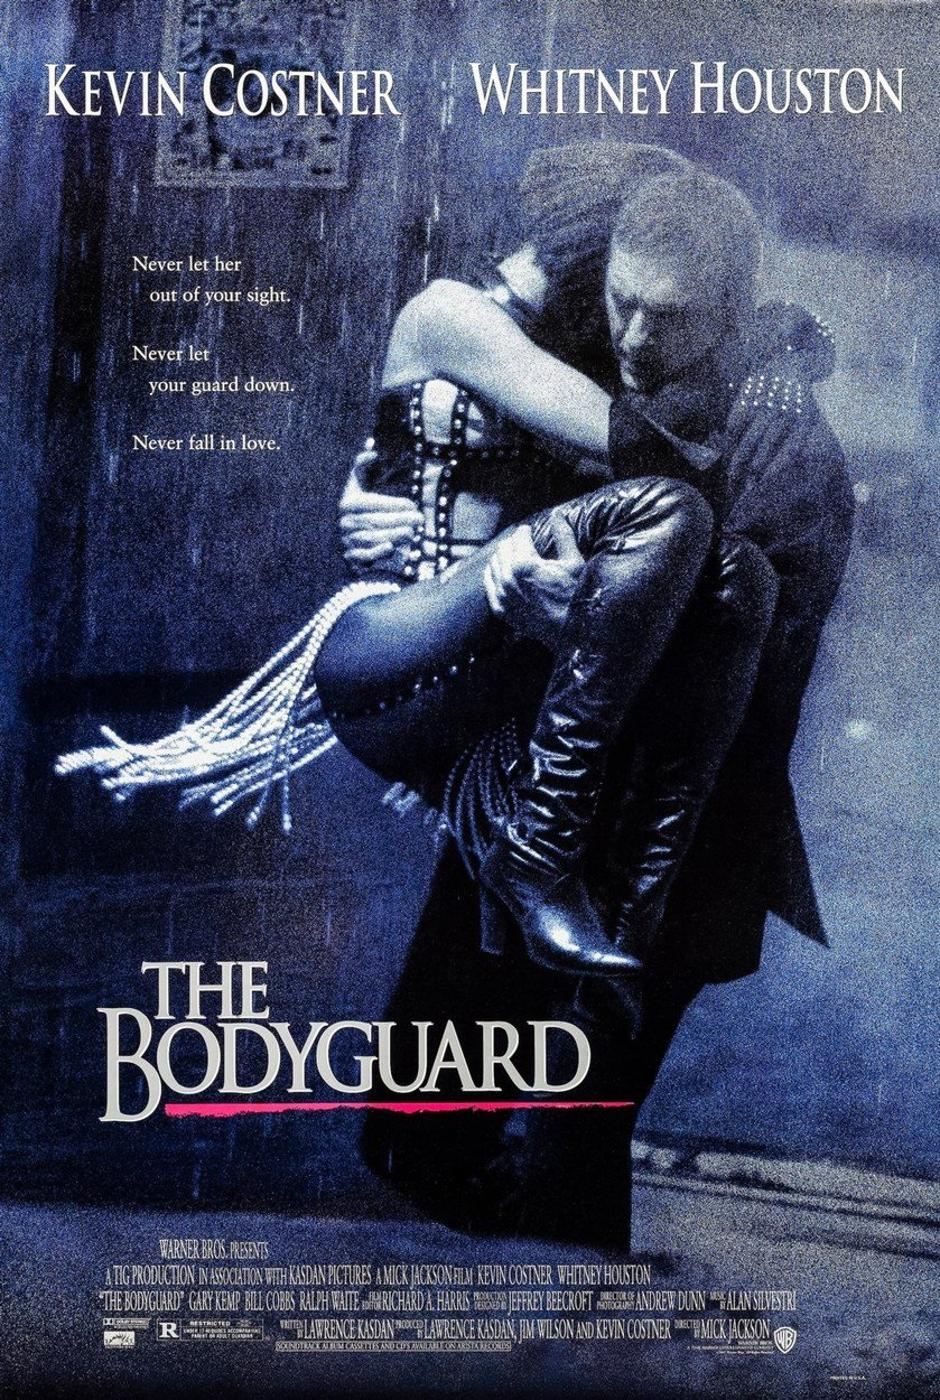 The Bodyguard (1992) directed by Mick Jackson and starring Kevin Costner, Whitney Houston and Gary Kemp. A bodyguard falls in love with a pop singer he is hired to protect against a stalker. | Autor: Profimedia